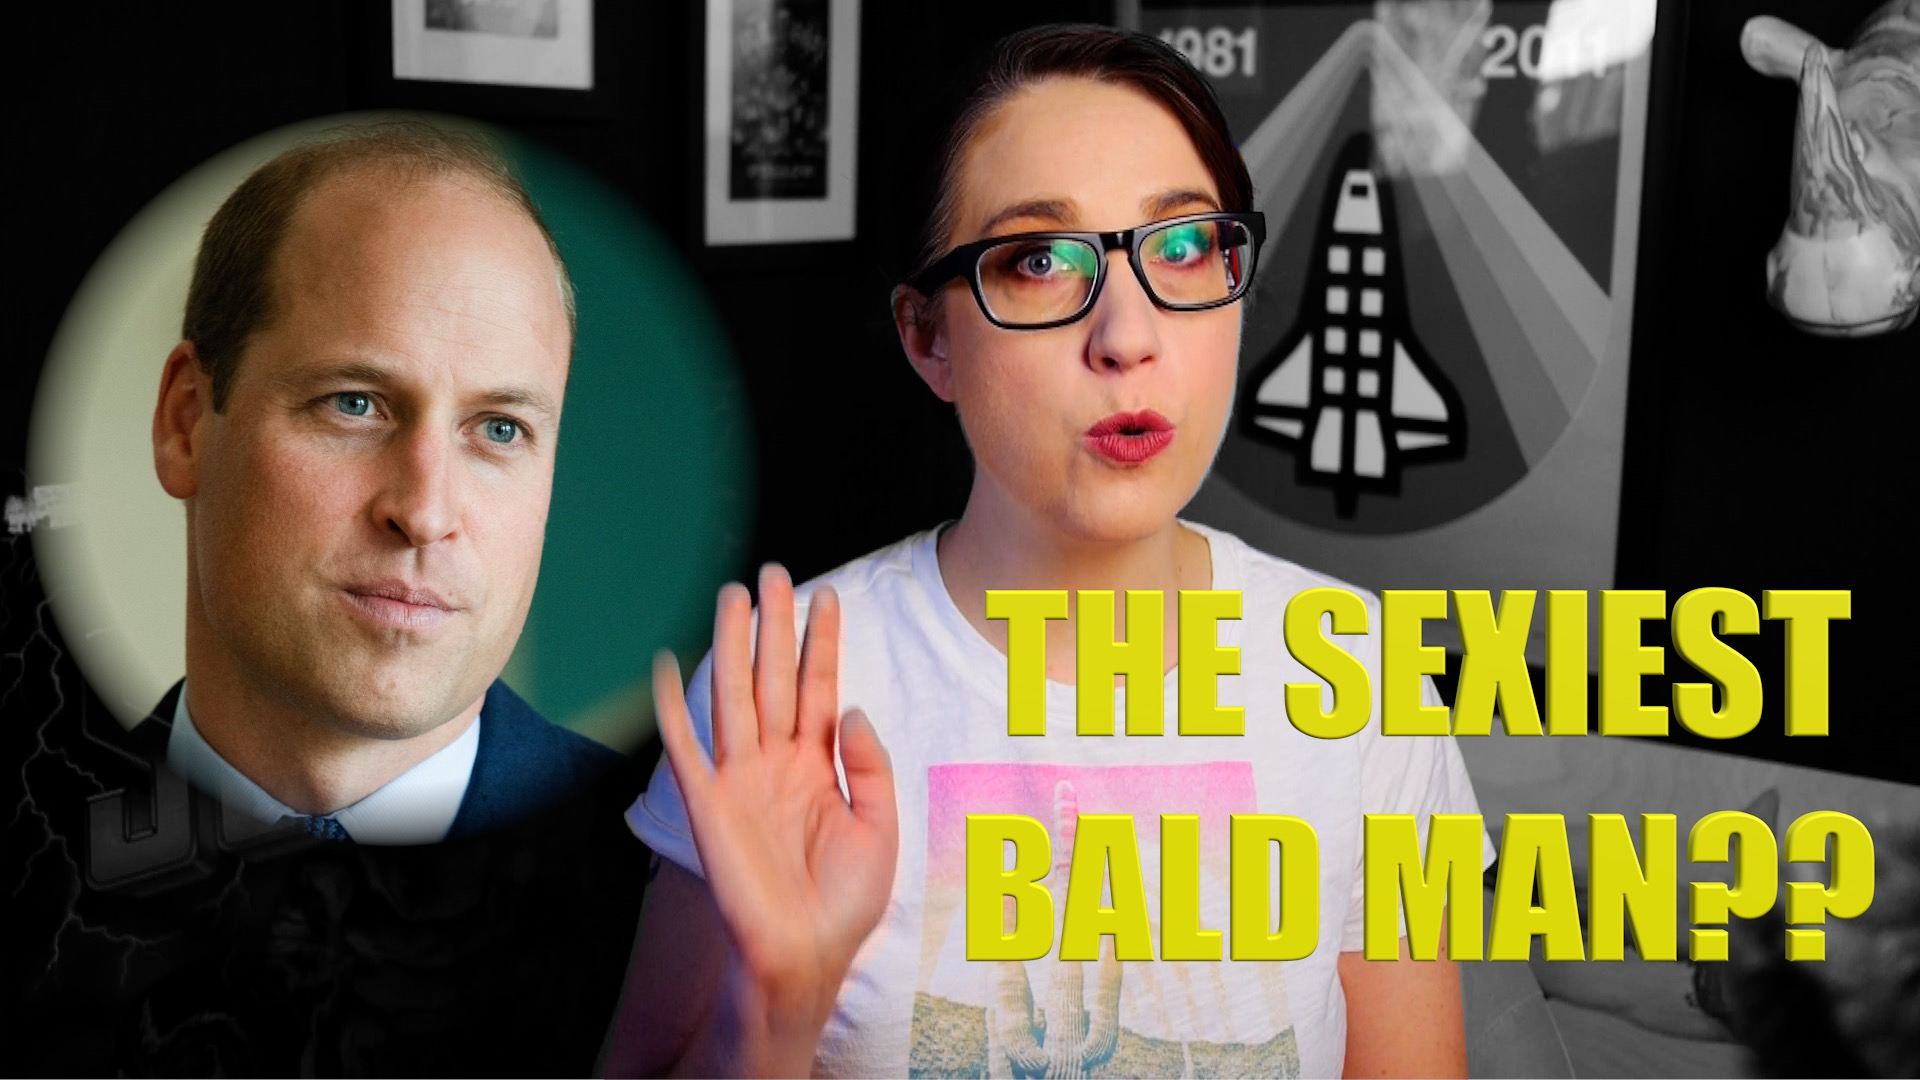 (Fake) SCIENCE Finds the World's Sexiest Bald Man